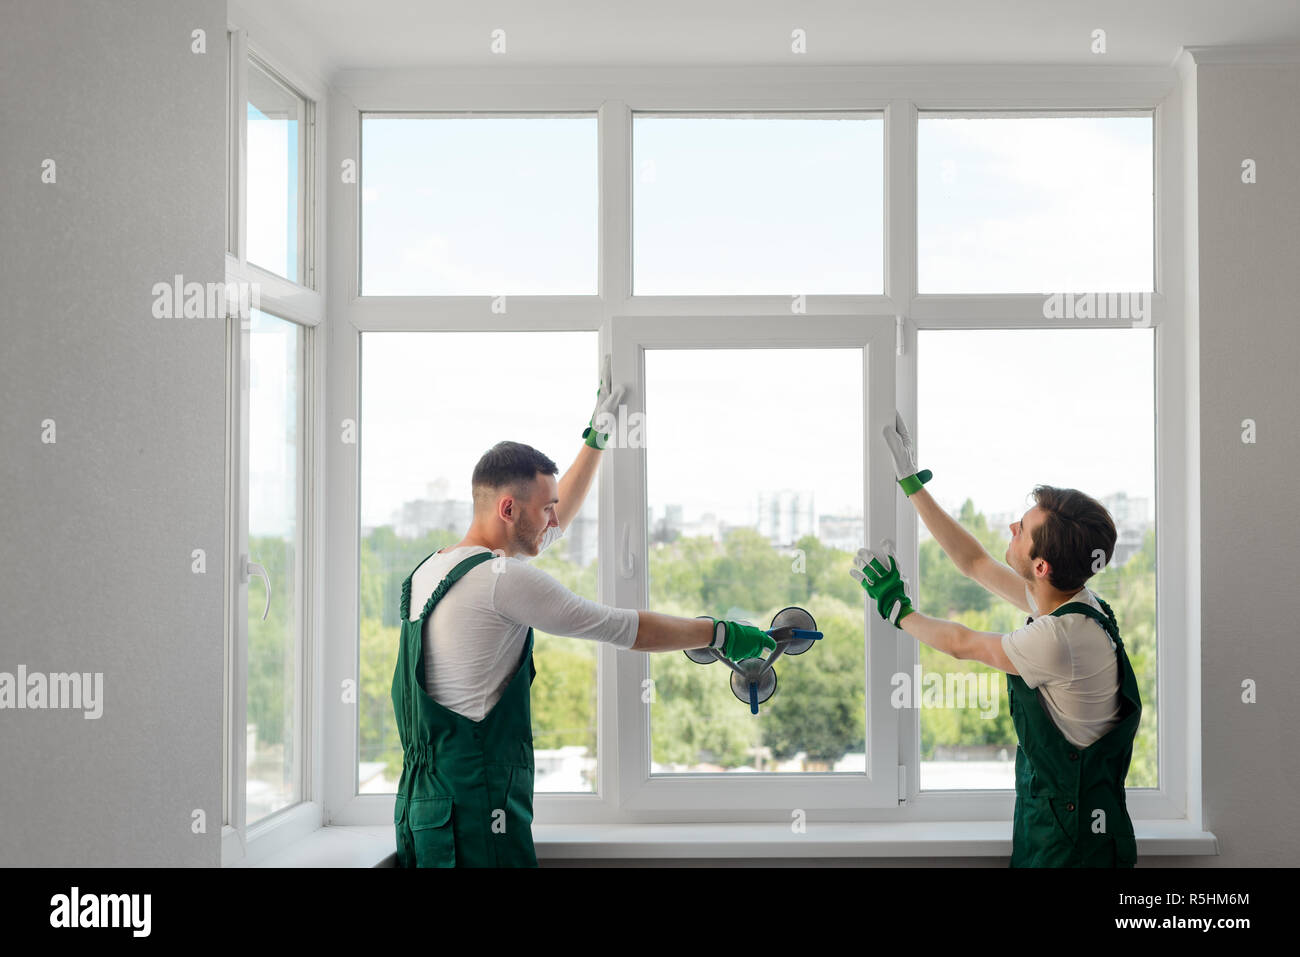 Construction workers install a window - Stock Image